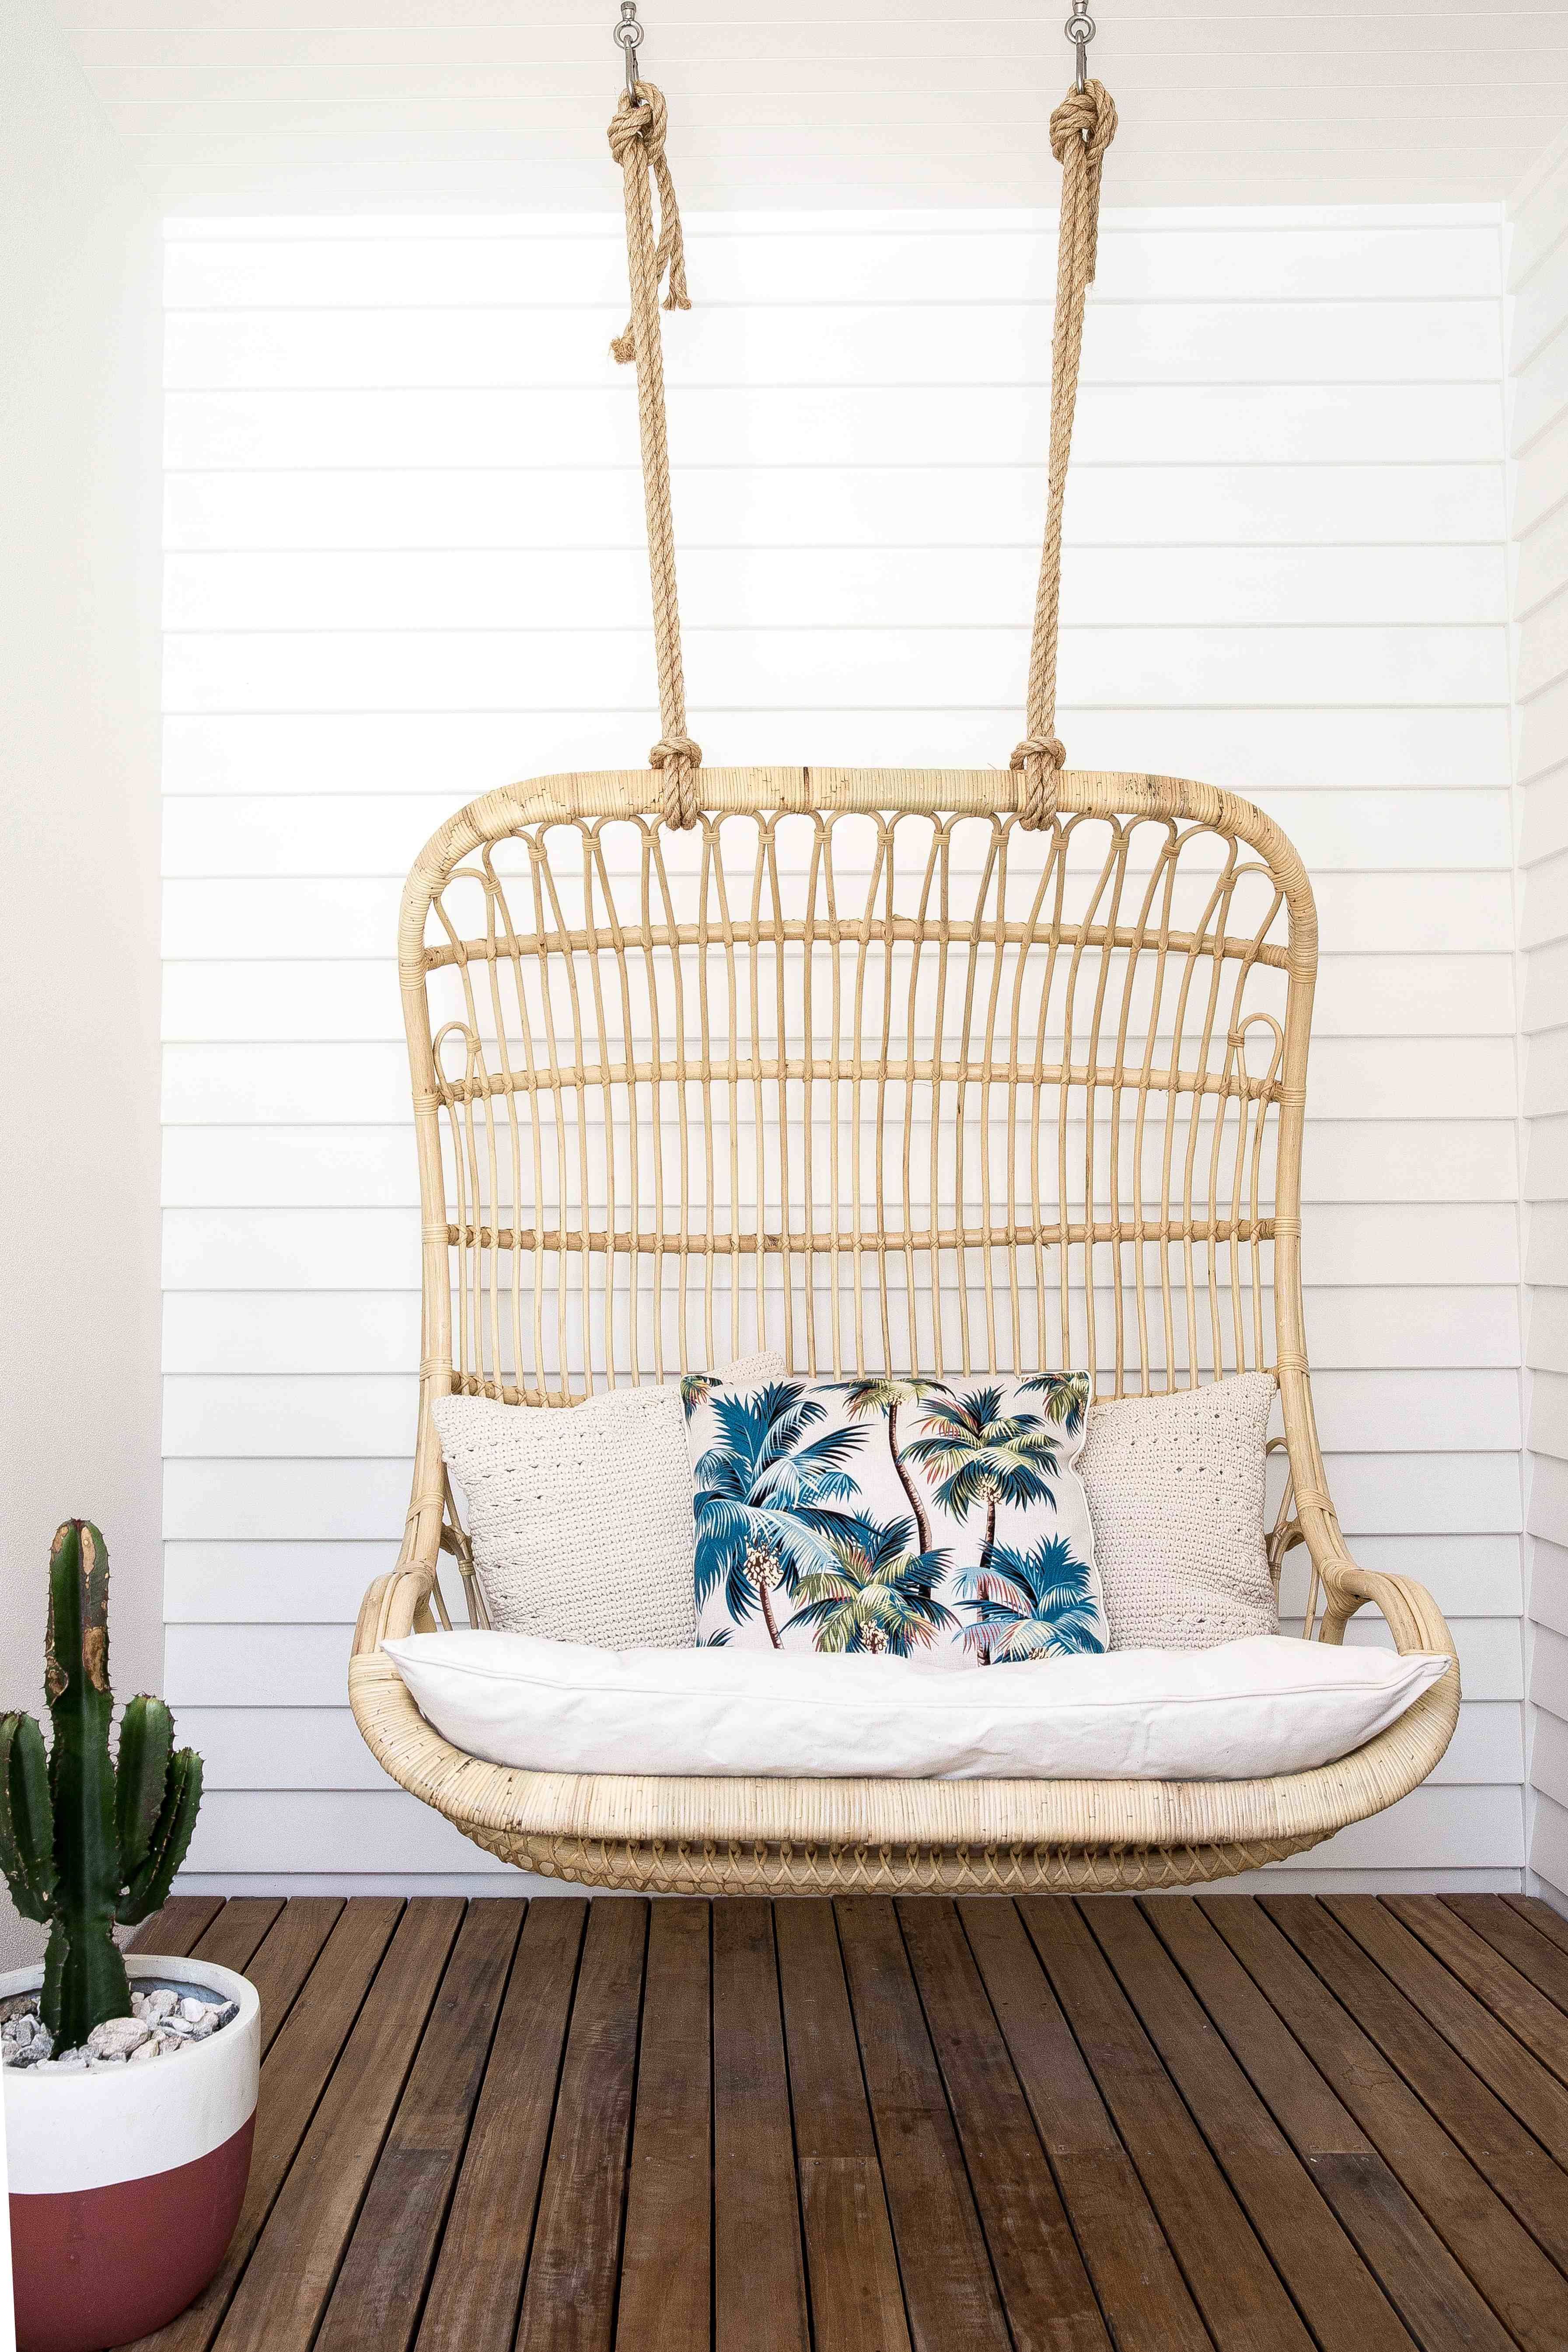 70s Double hanging chair from Byron Bay Hanging Chairs